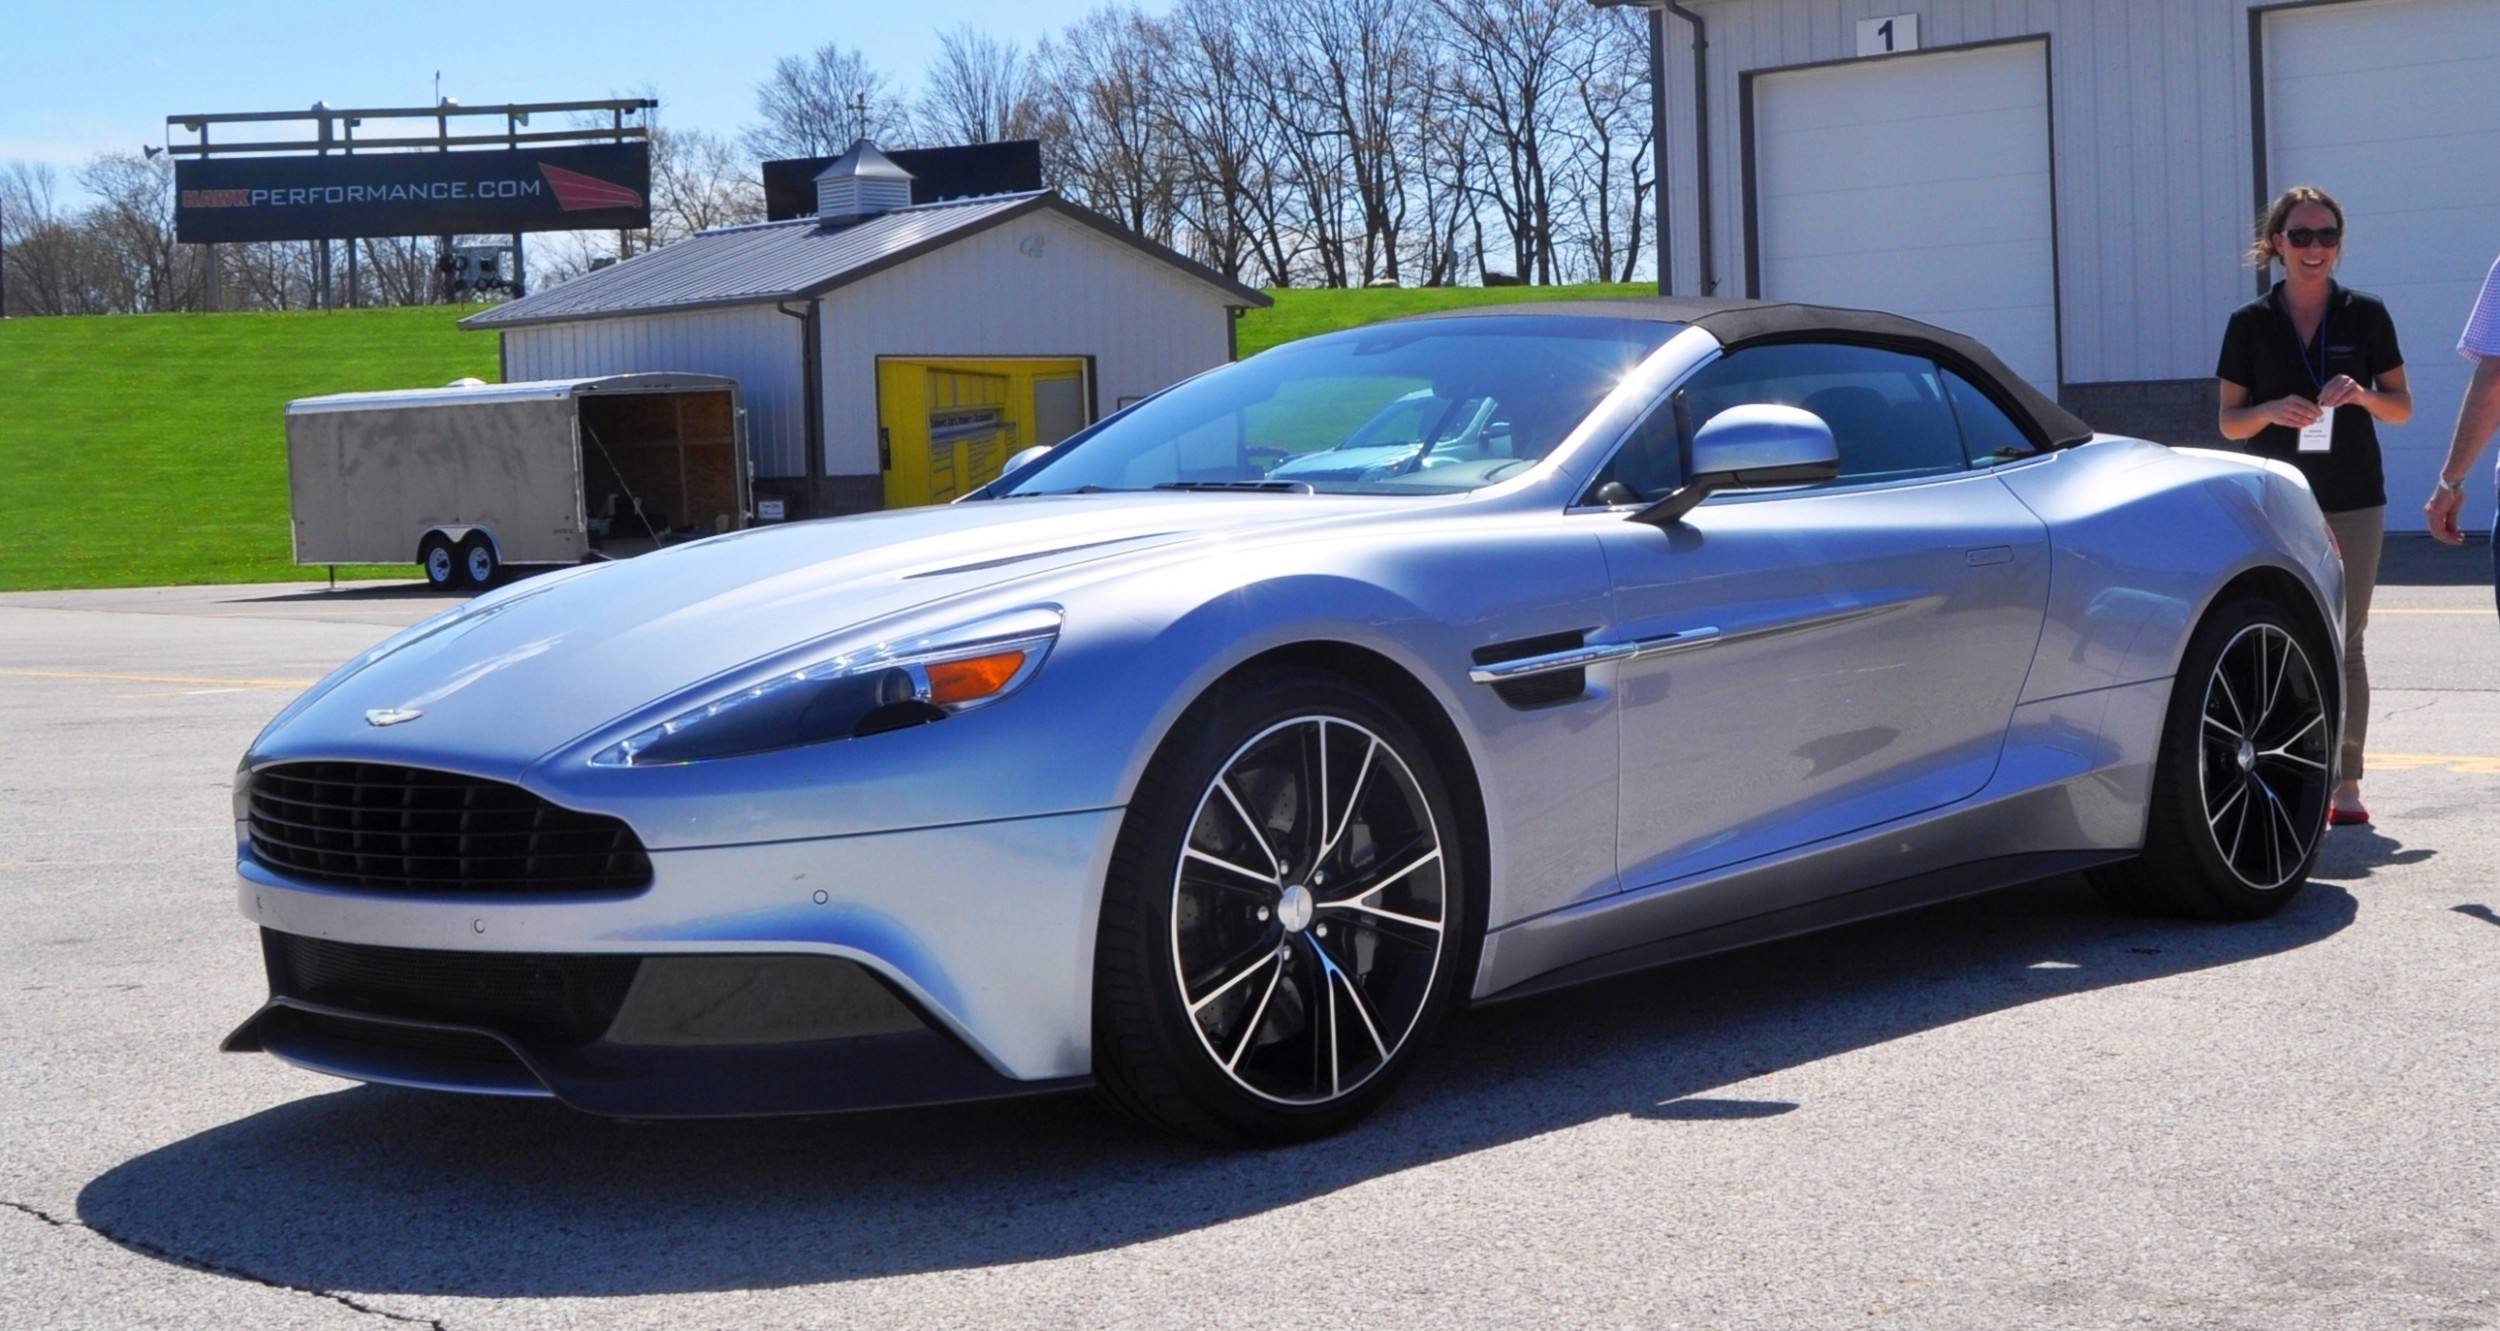 2014 Aston Martin Vanquish Volante In The Flesh Thisclose To Test Drive But